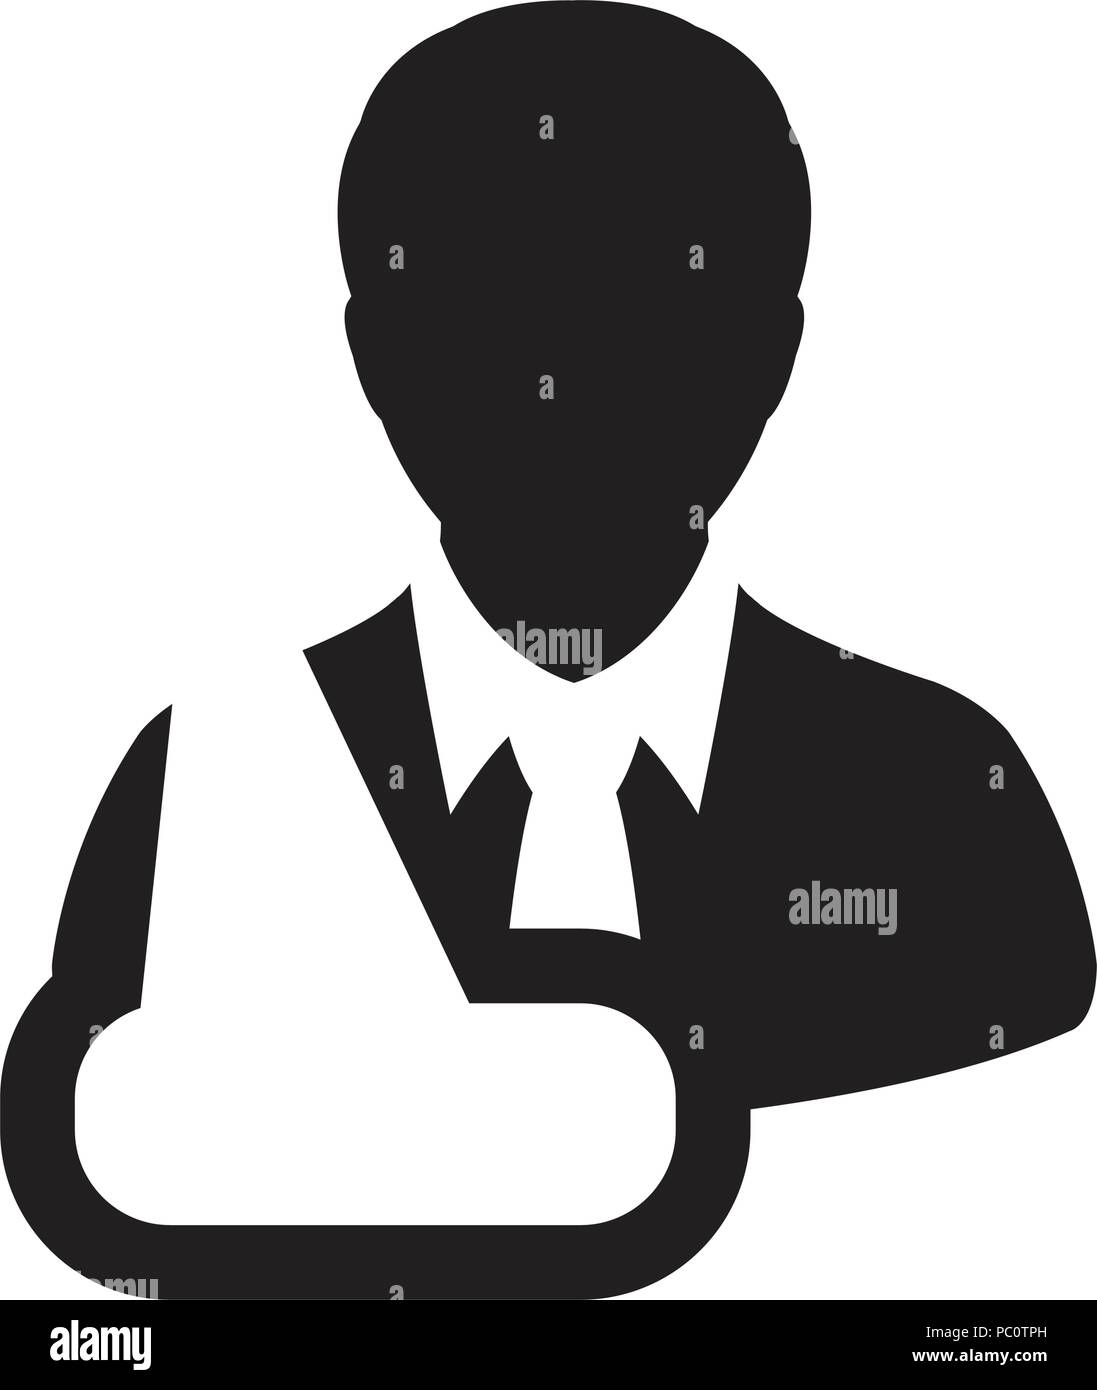 Nursing Icon Vector Of Male Person Profile Avatar Symbol For Injury